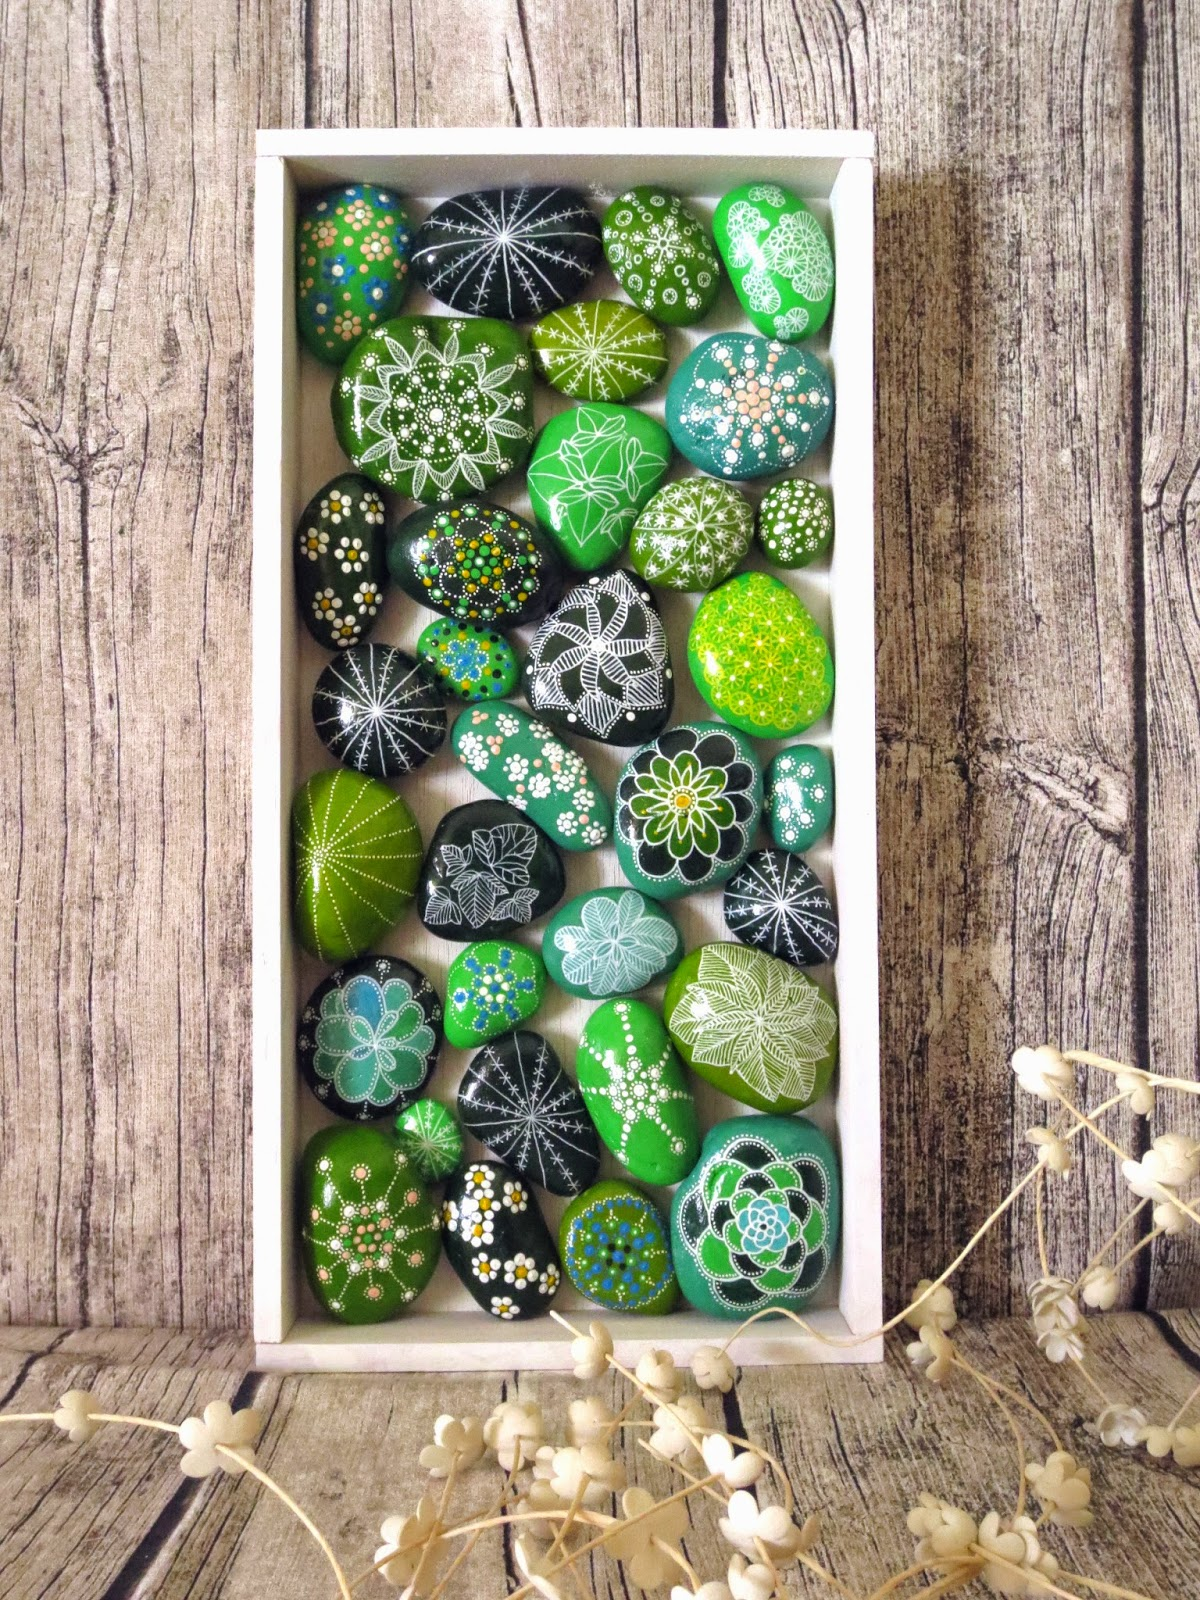 Aquarium Deko Ideen 20 Amazing Stone Crafts That Will Boost Your Creativity